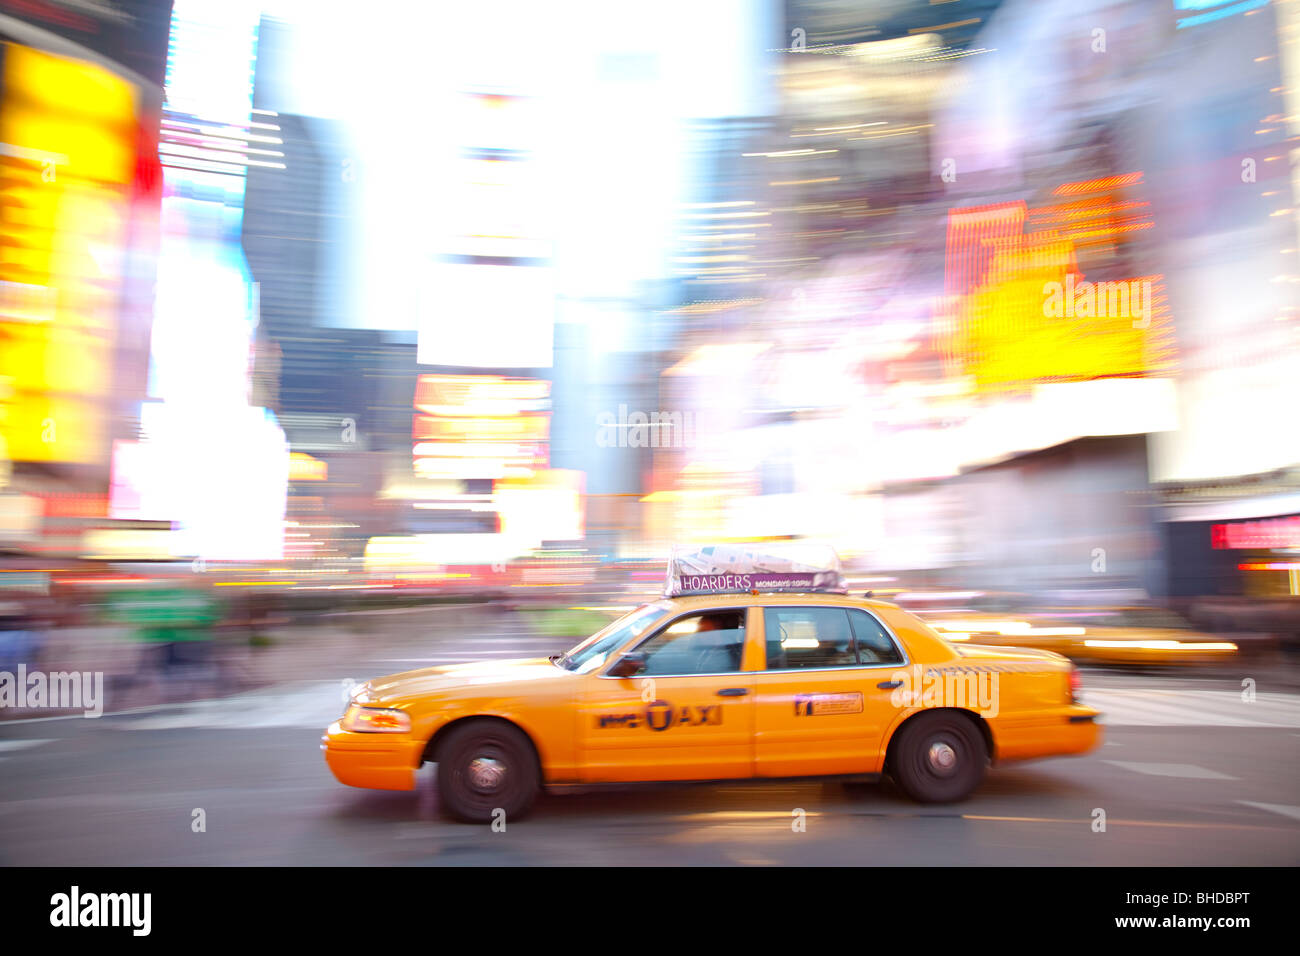 New York Taxis am Times Square Stockbild